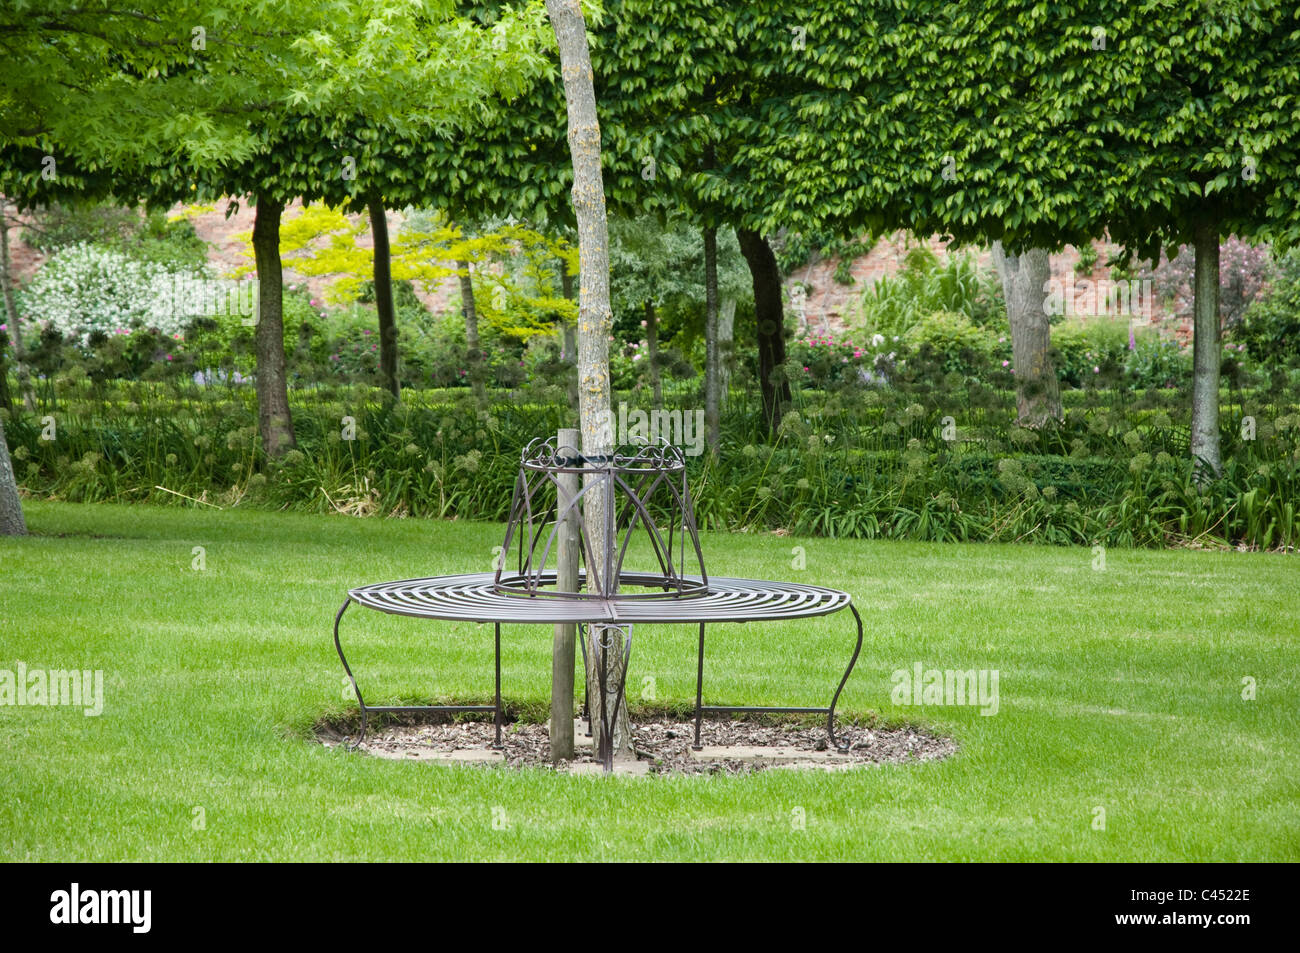 Wrought Iron seat in an English Country garden - Stock Image